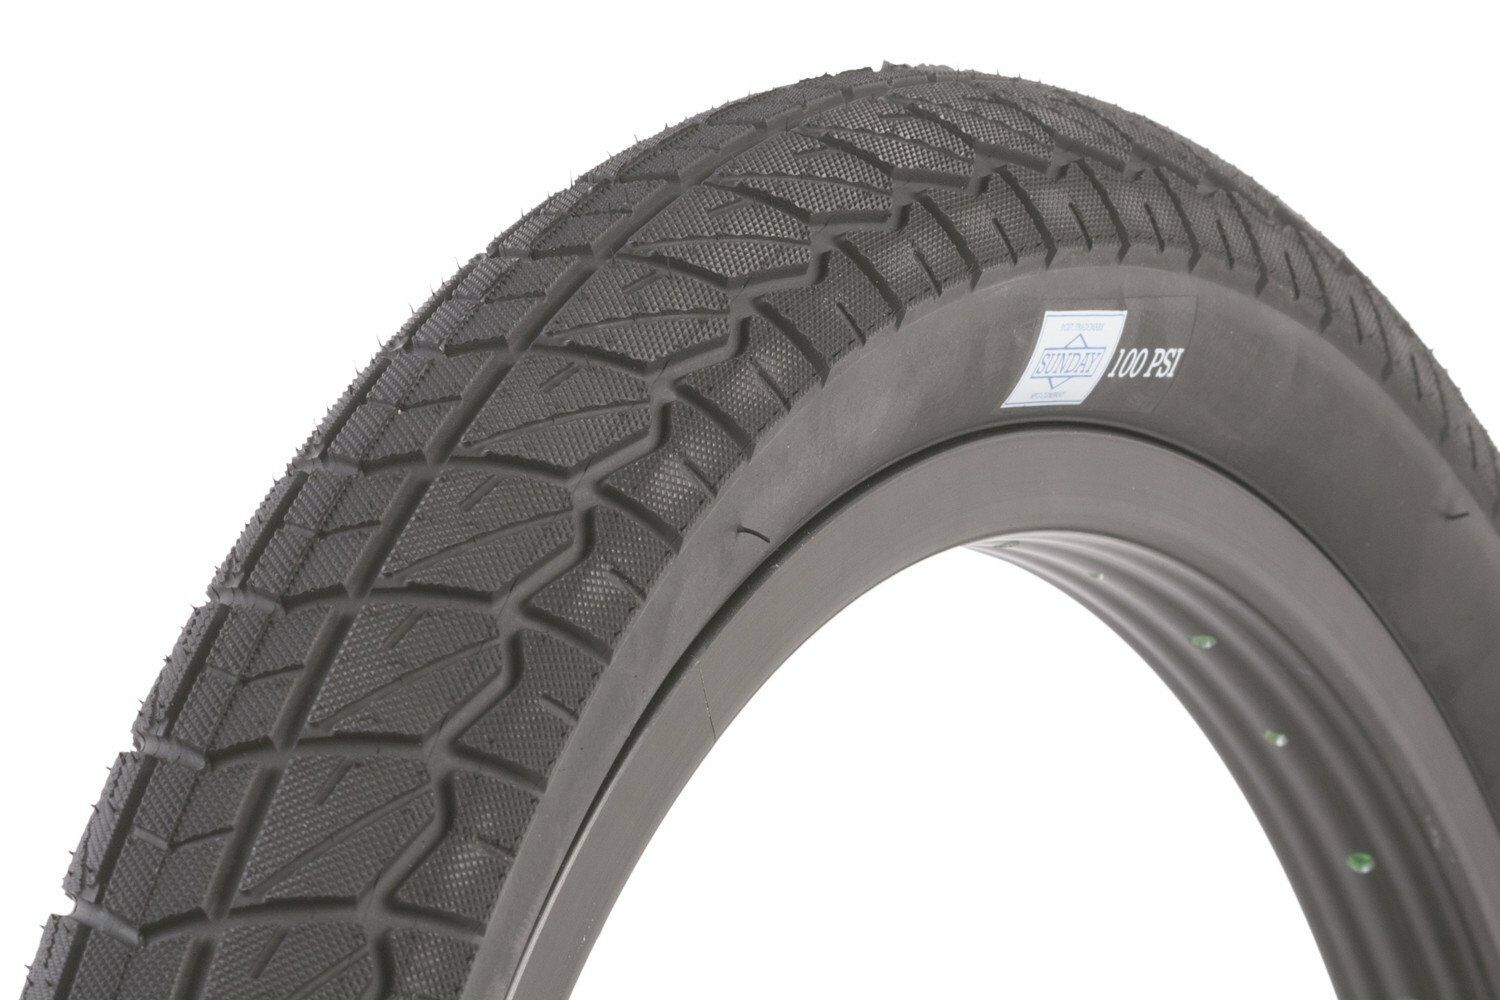 20x2.25 Sunday BMX Current Tire - 100 psi - All Black